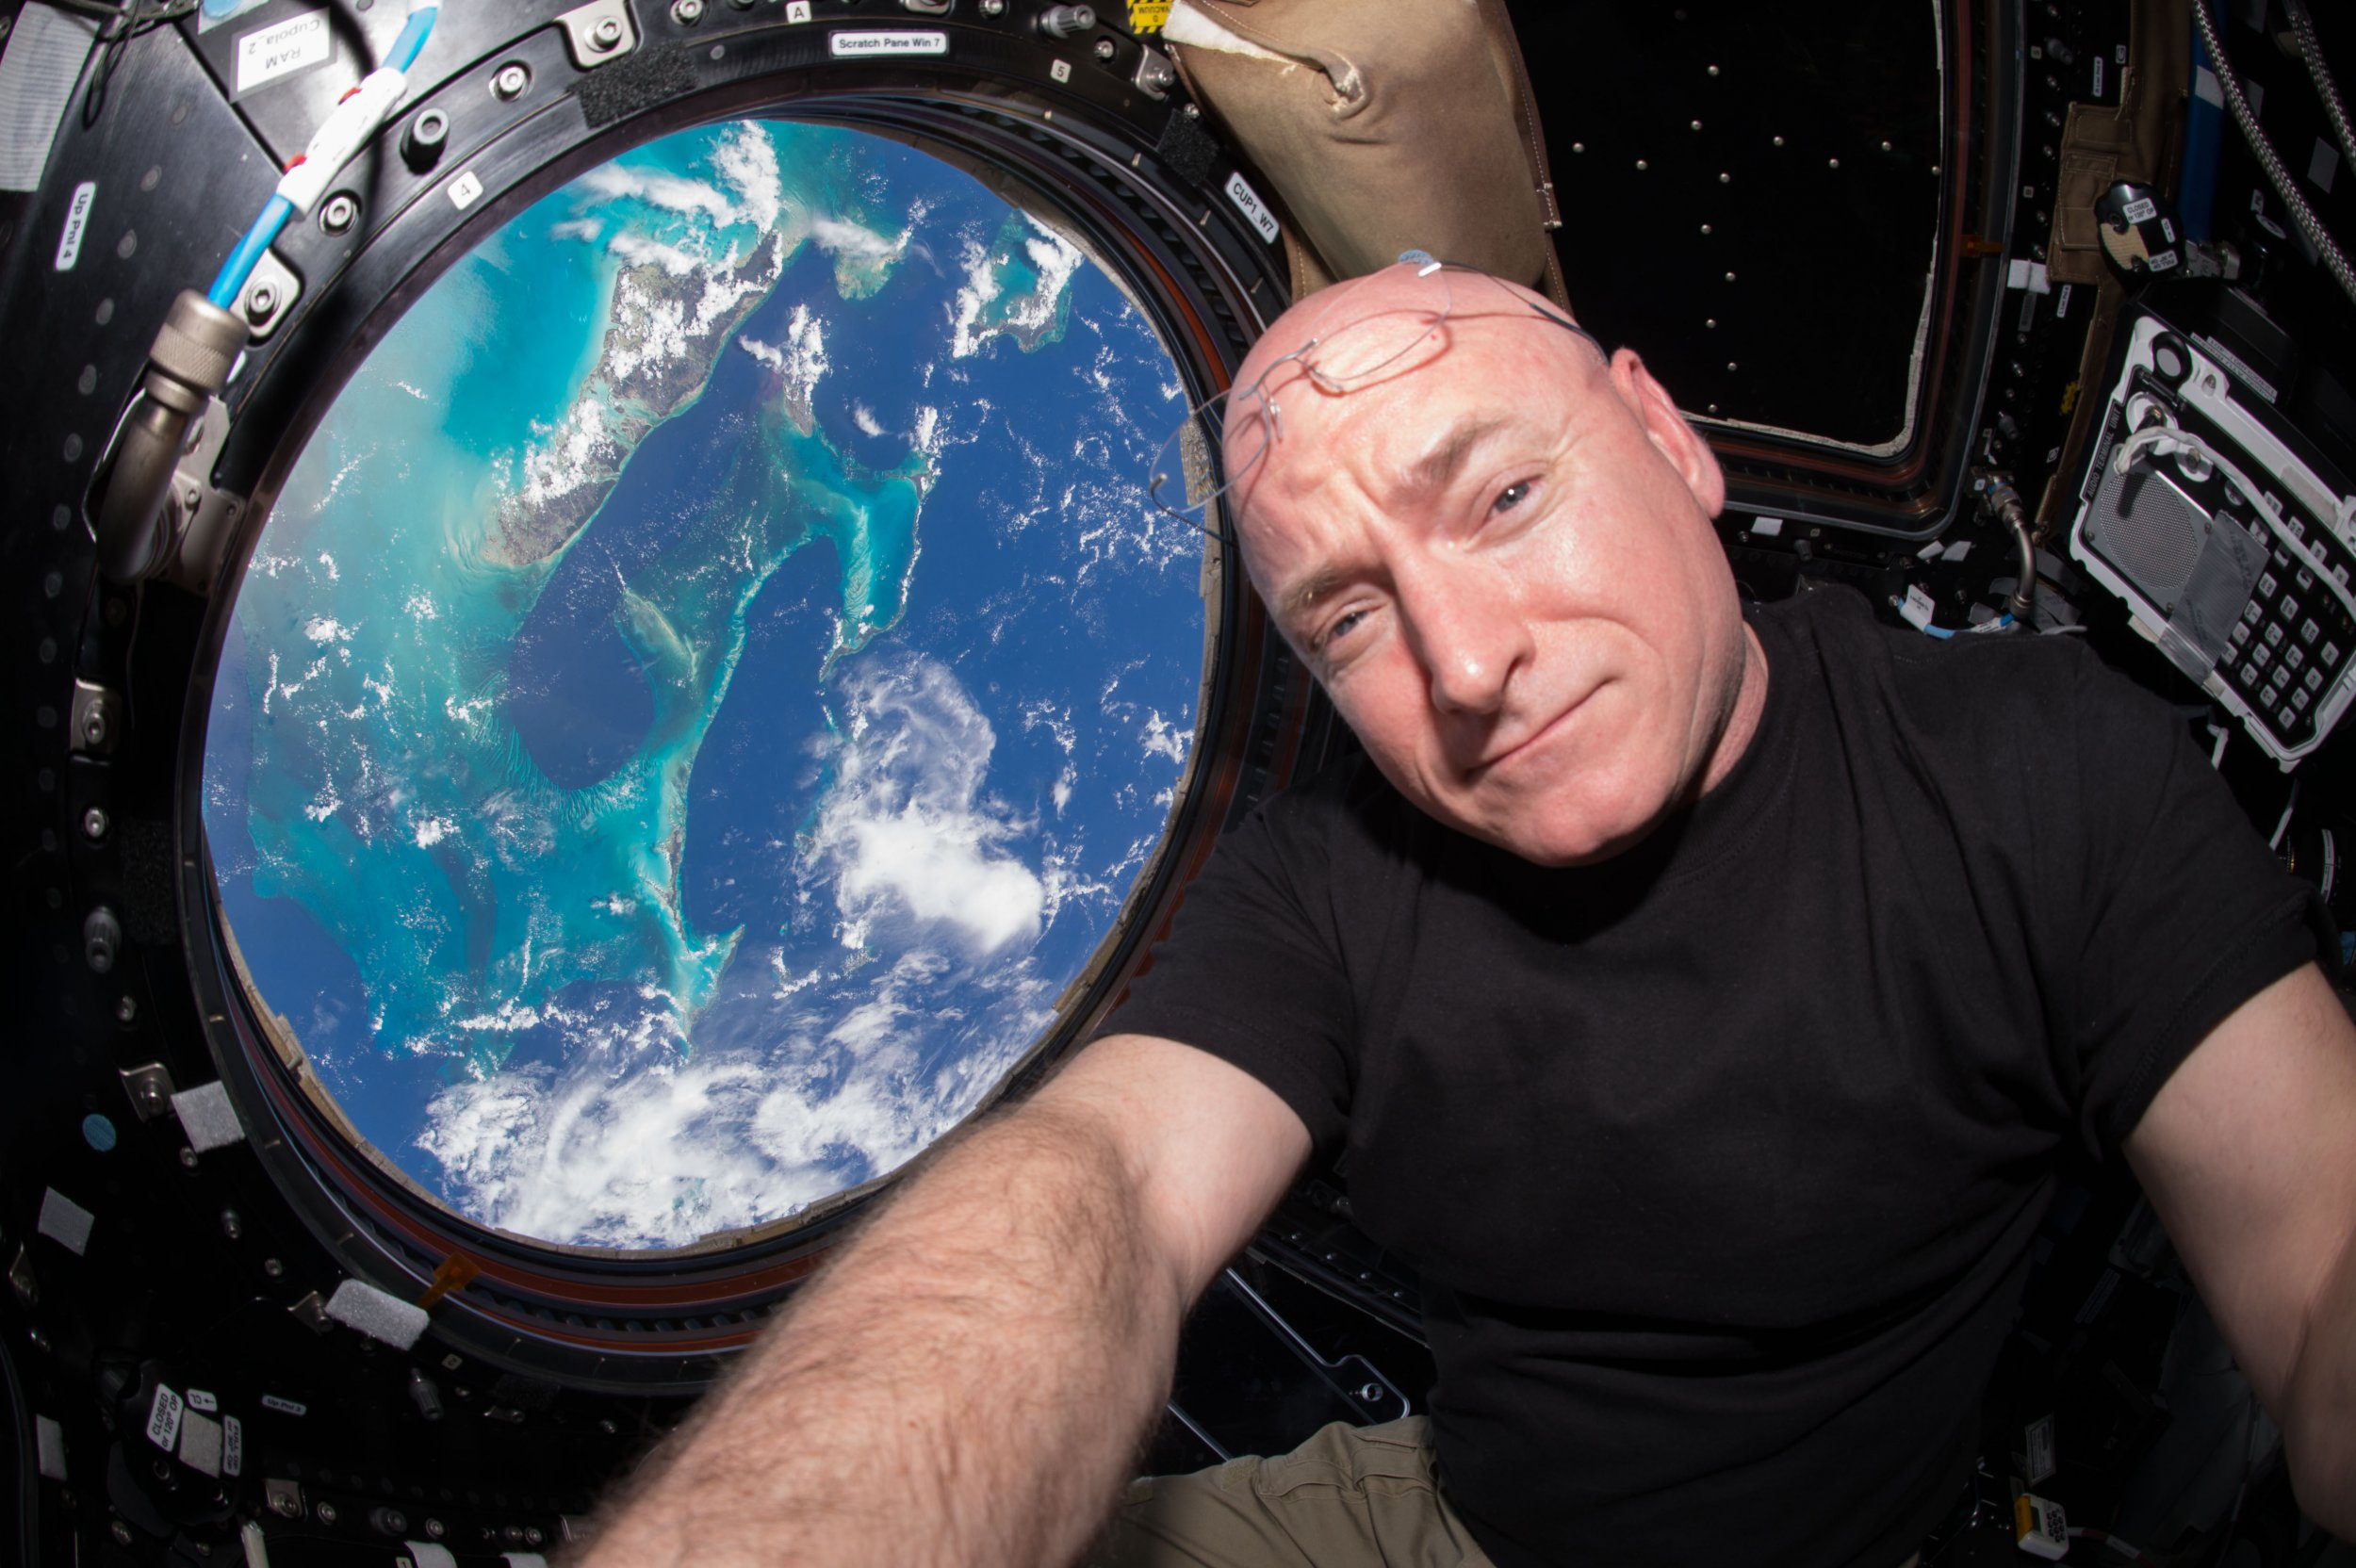 NASA astronaut Scott Kelly in space